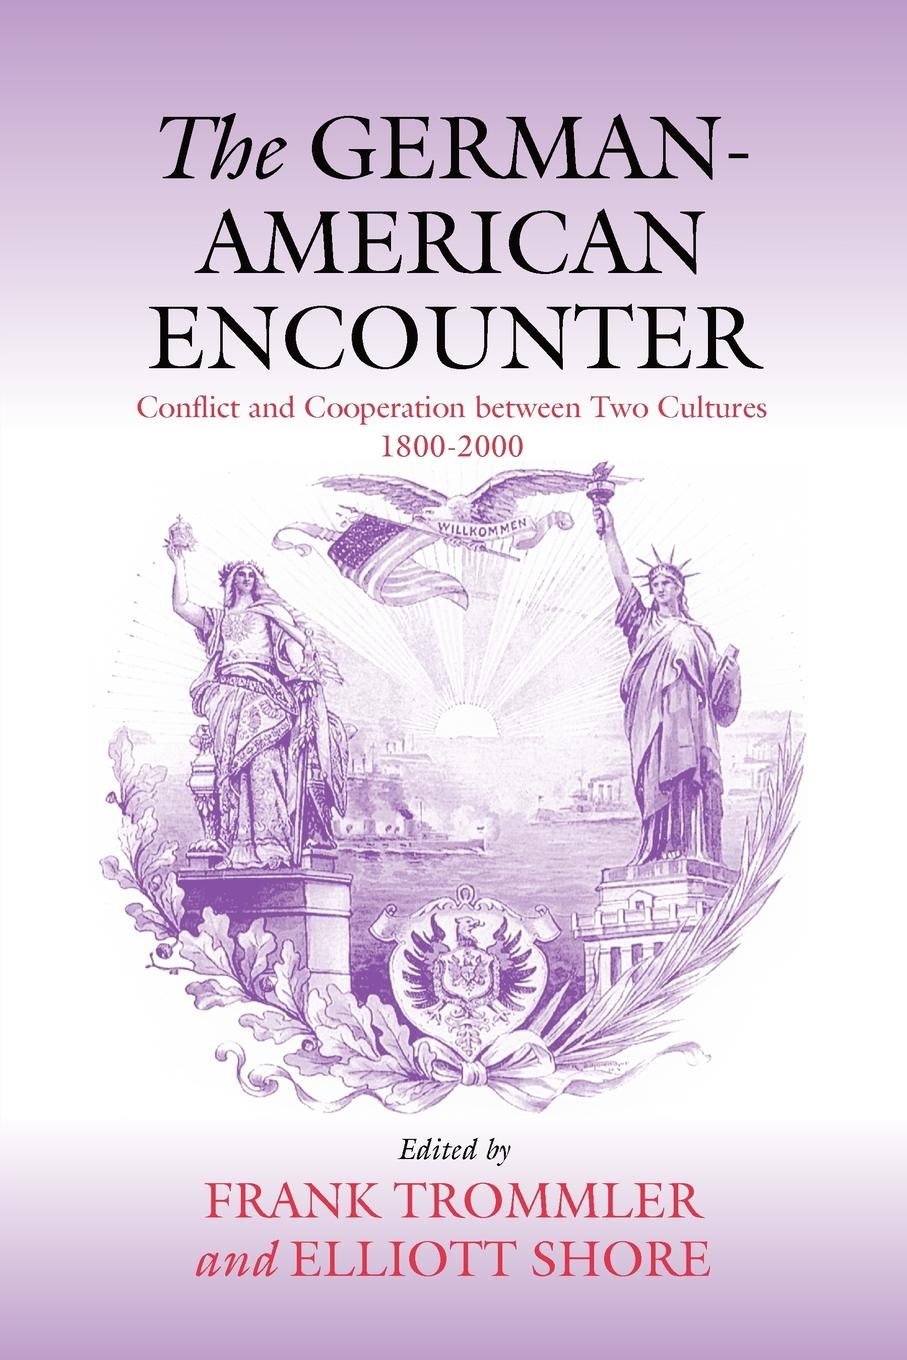 цены The German-American Encounter. Conflict and Cooperation Between Two Cultures, 1800-2000